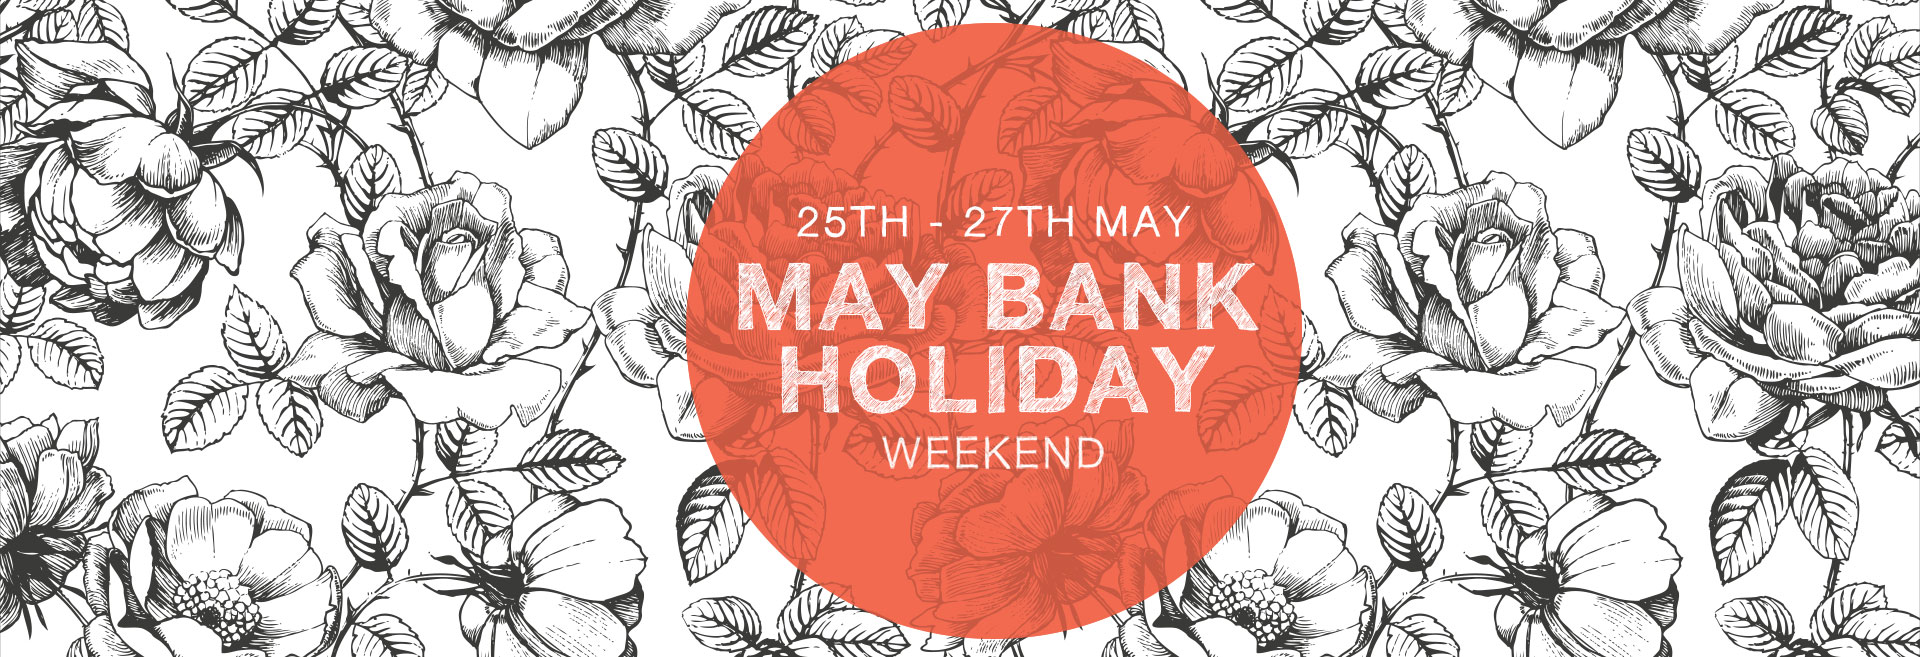 May Bank Holiday at Harry Cook Free House